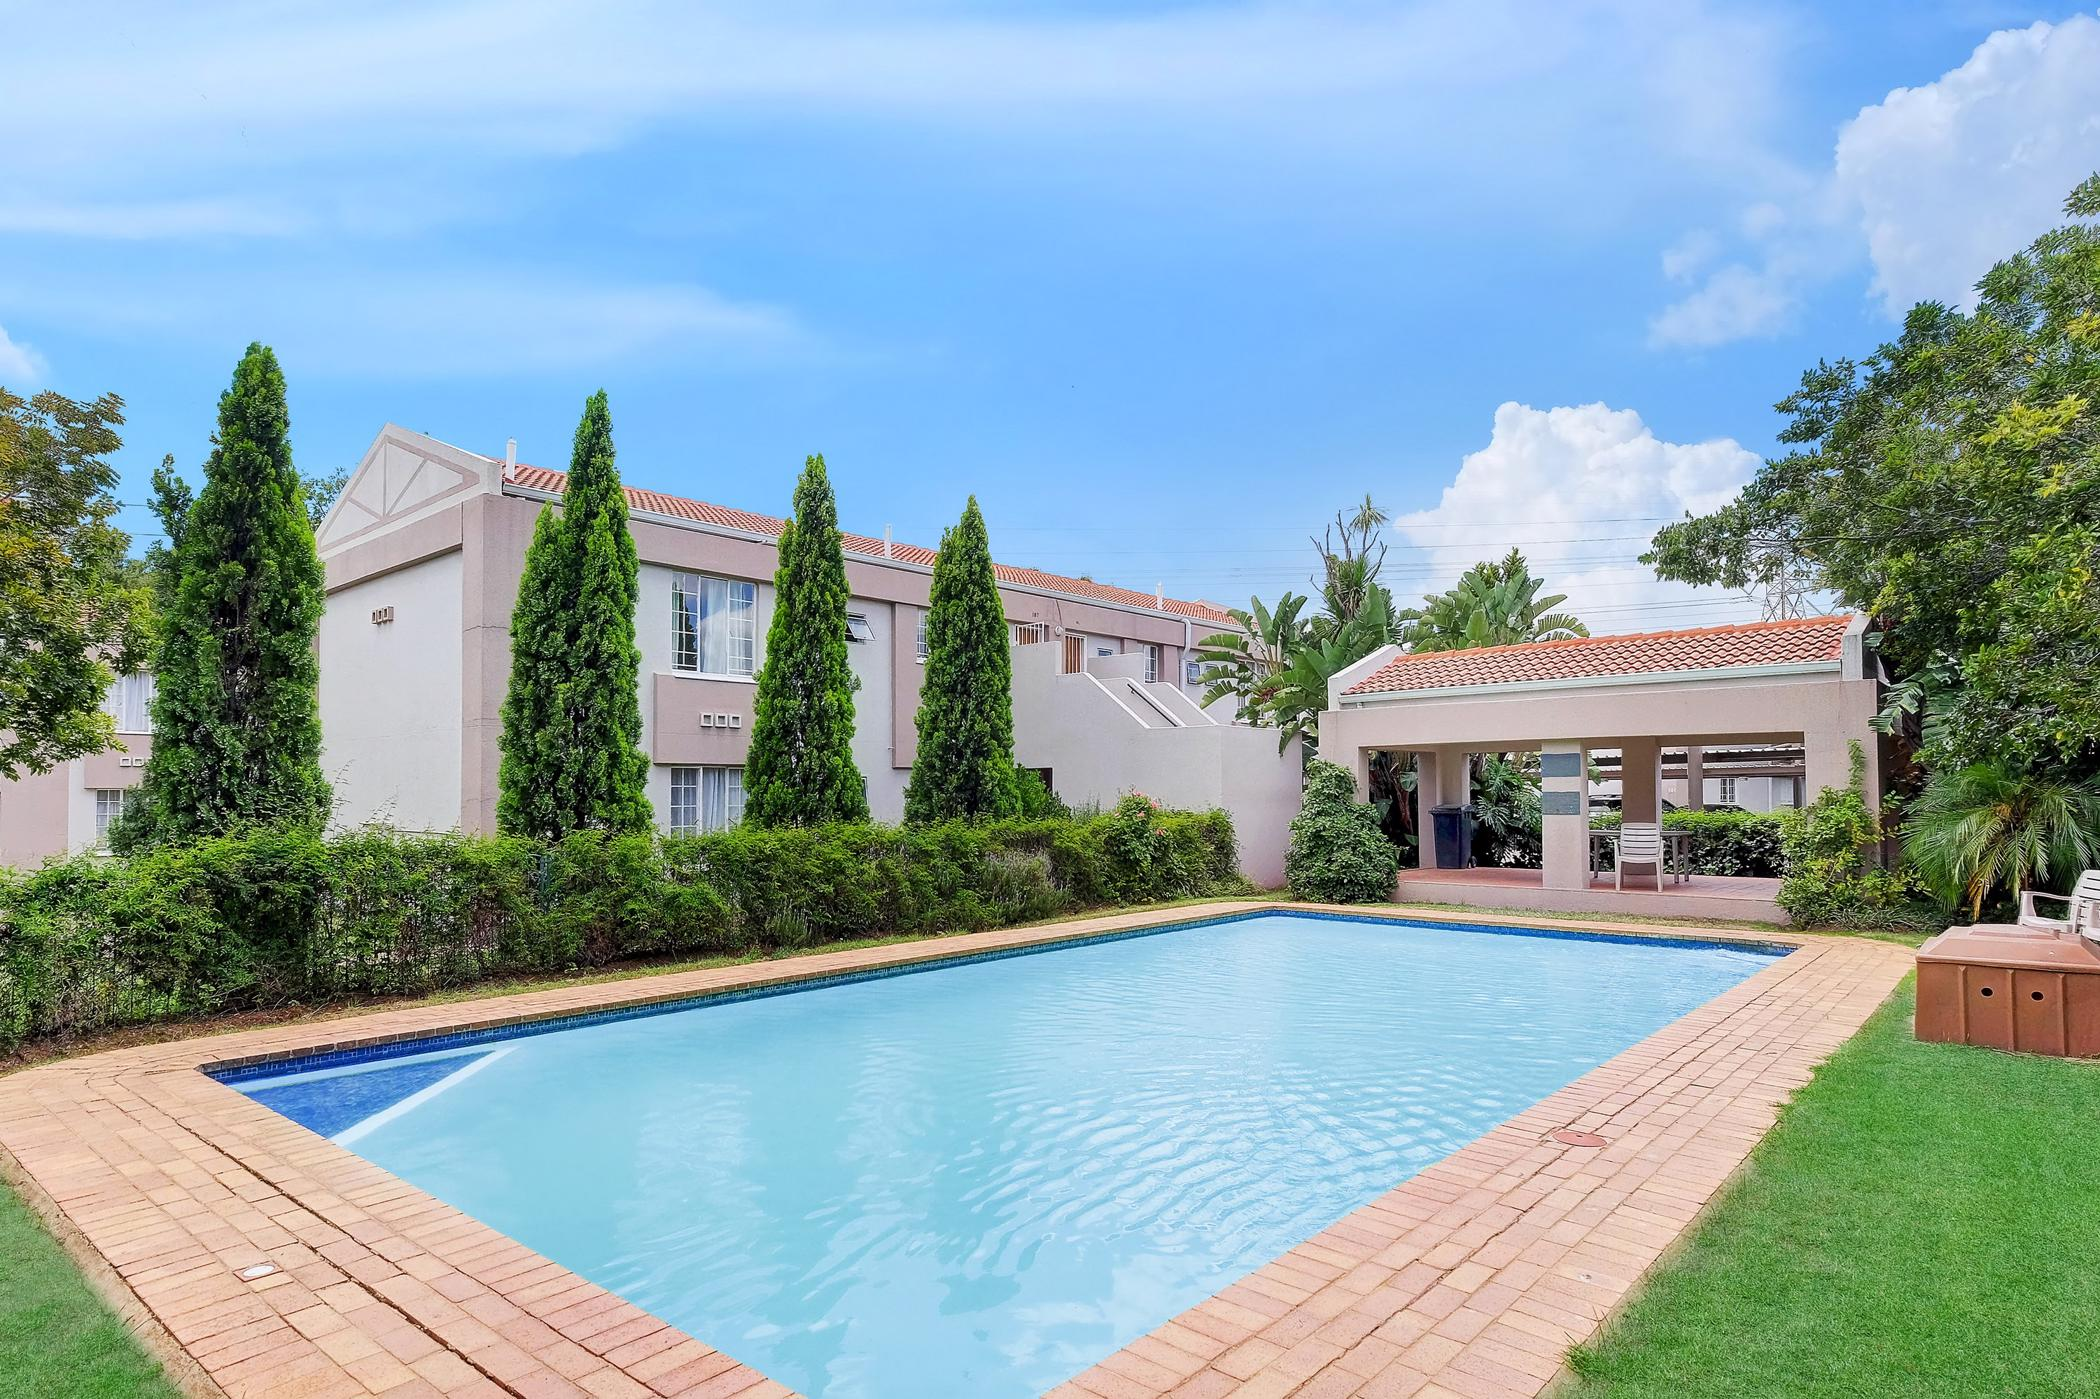 https://listing.pamgolding.co.za/images/properties/201906/1444085/H/1444085_H_13.jpg